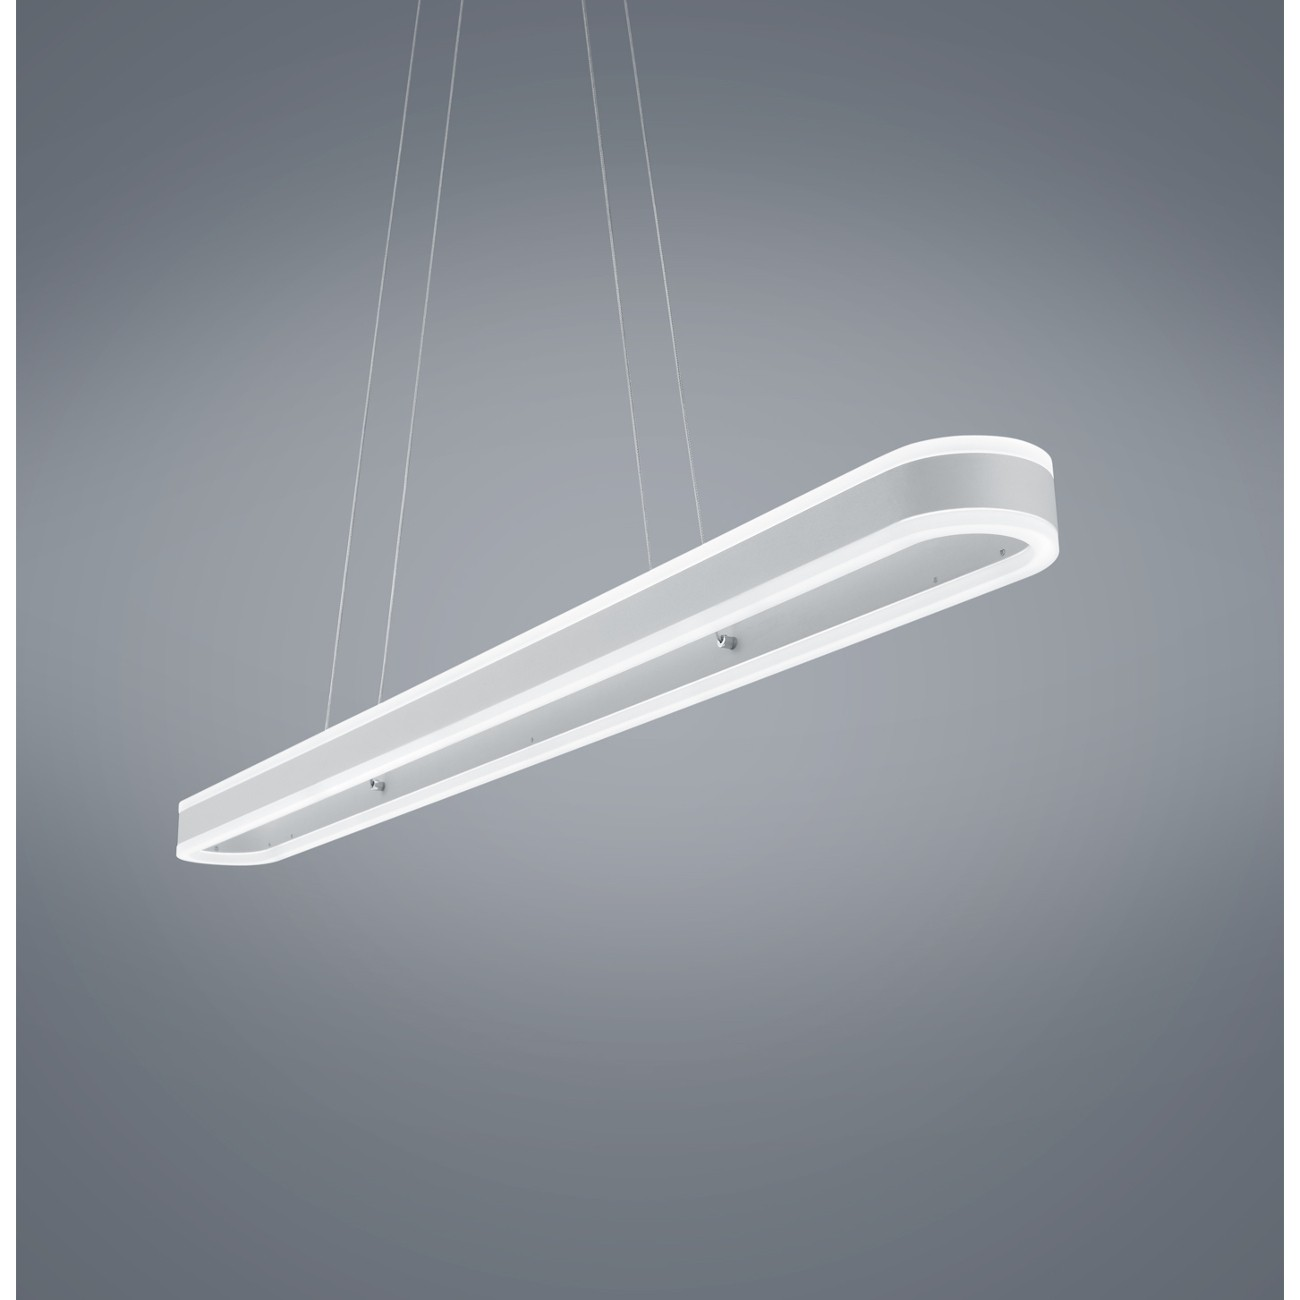 Exklusive dimmbare led pendelleuchte in wei matt liv 26 1892 for Exklusive pendelleuchten